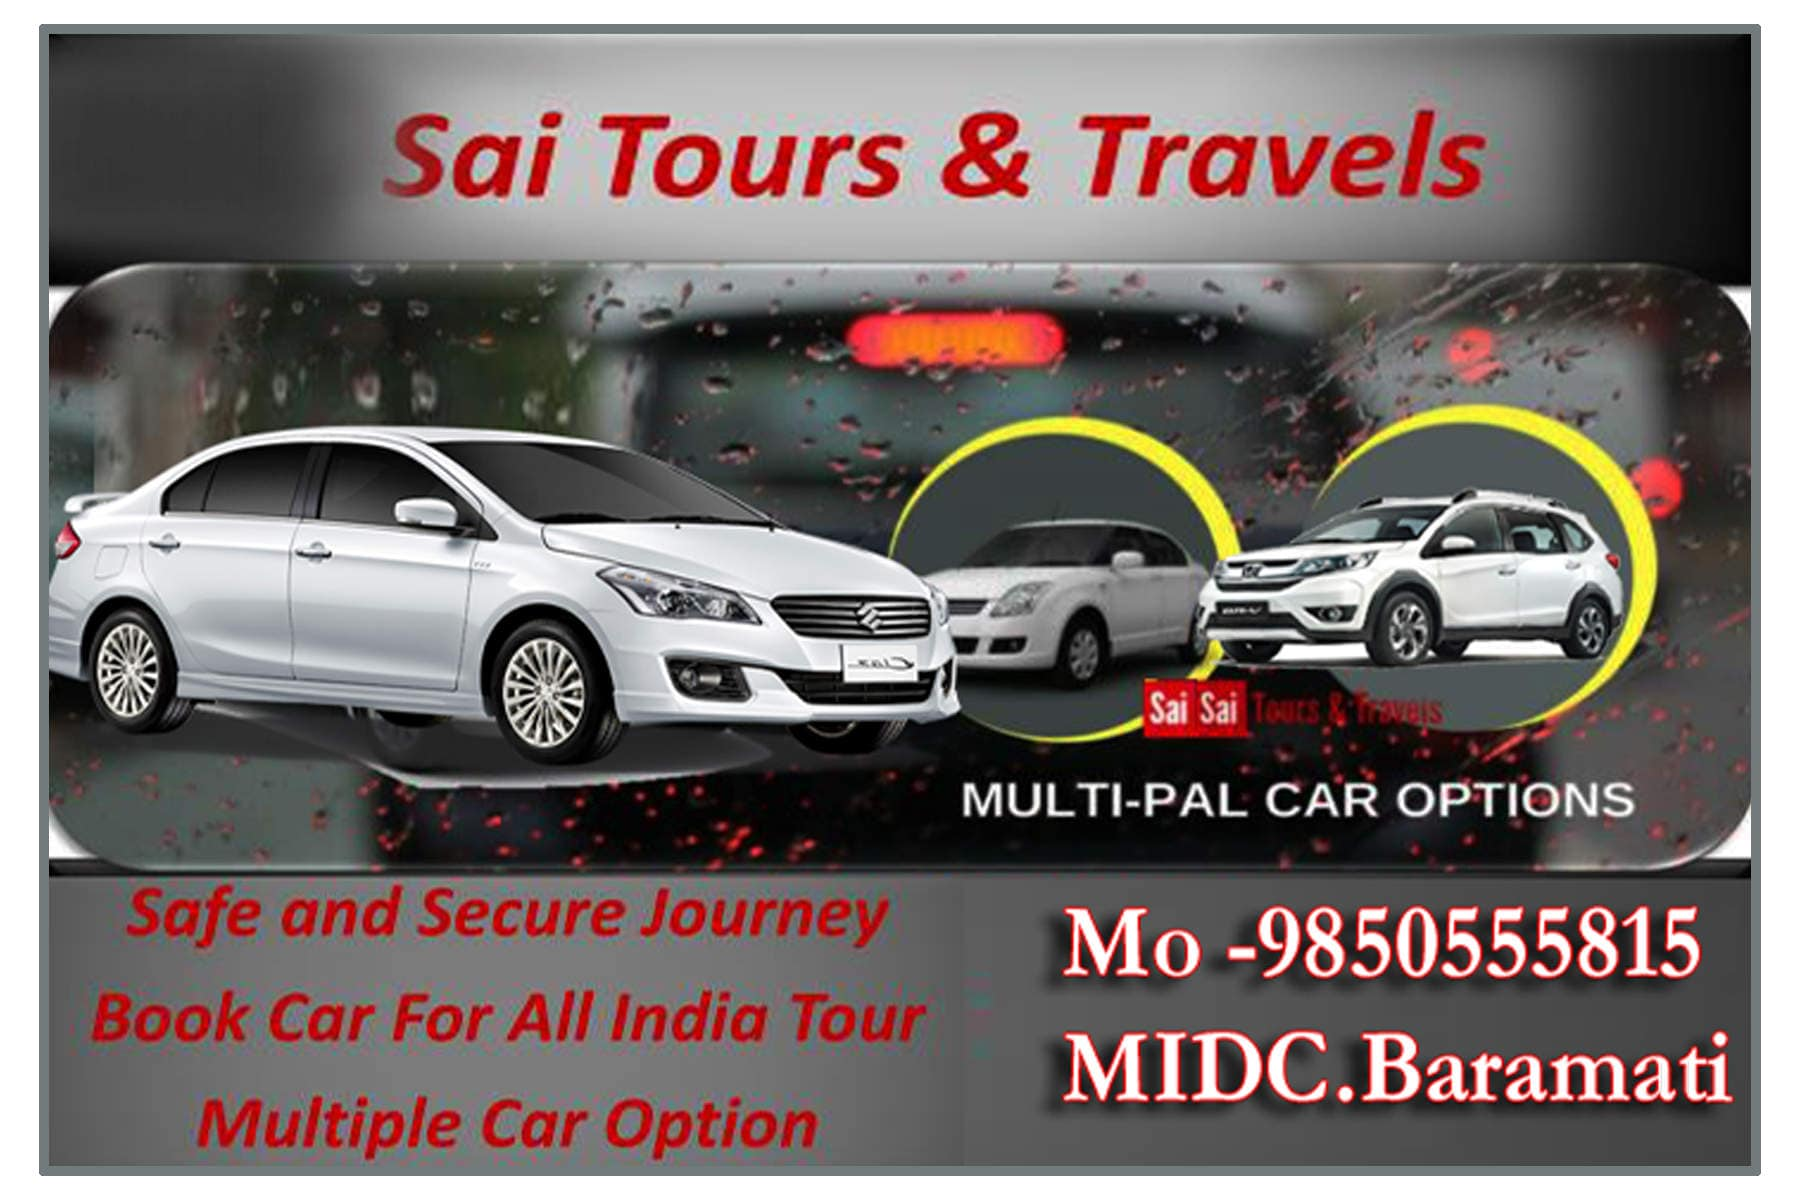 Requirements To Rent A Car >> Top 100 Self Drive Car Rentals In Baramati Best Cars On